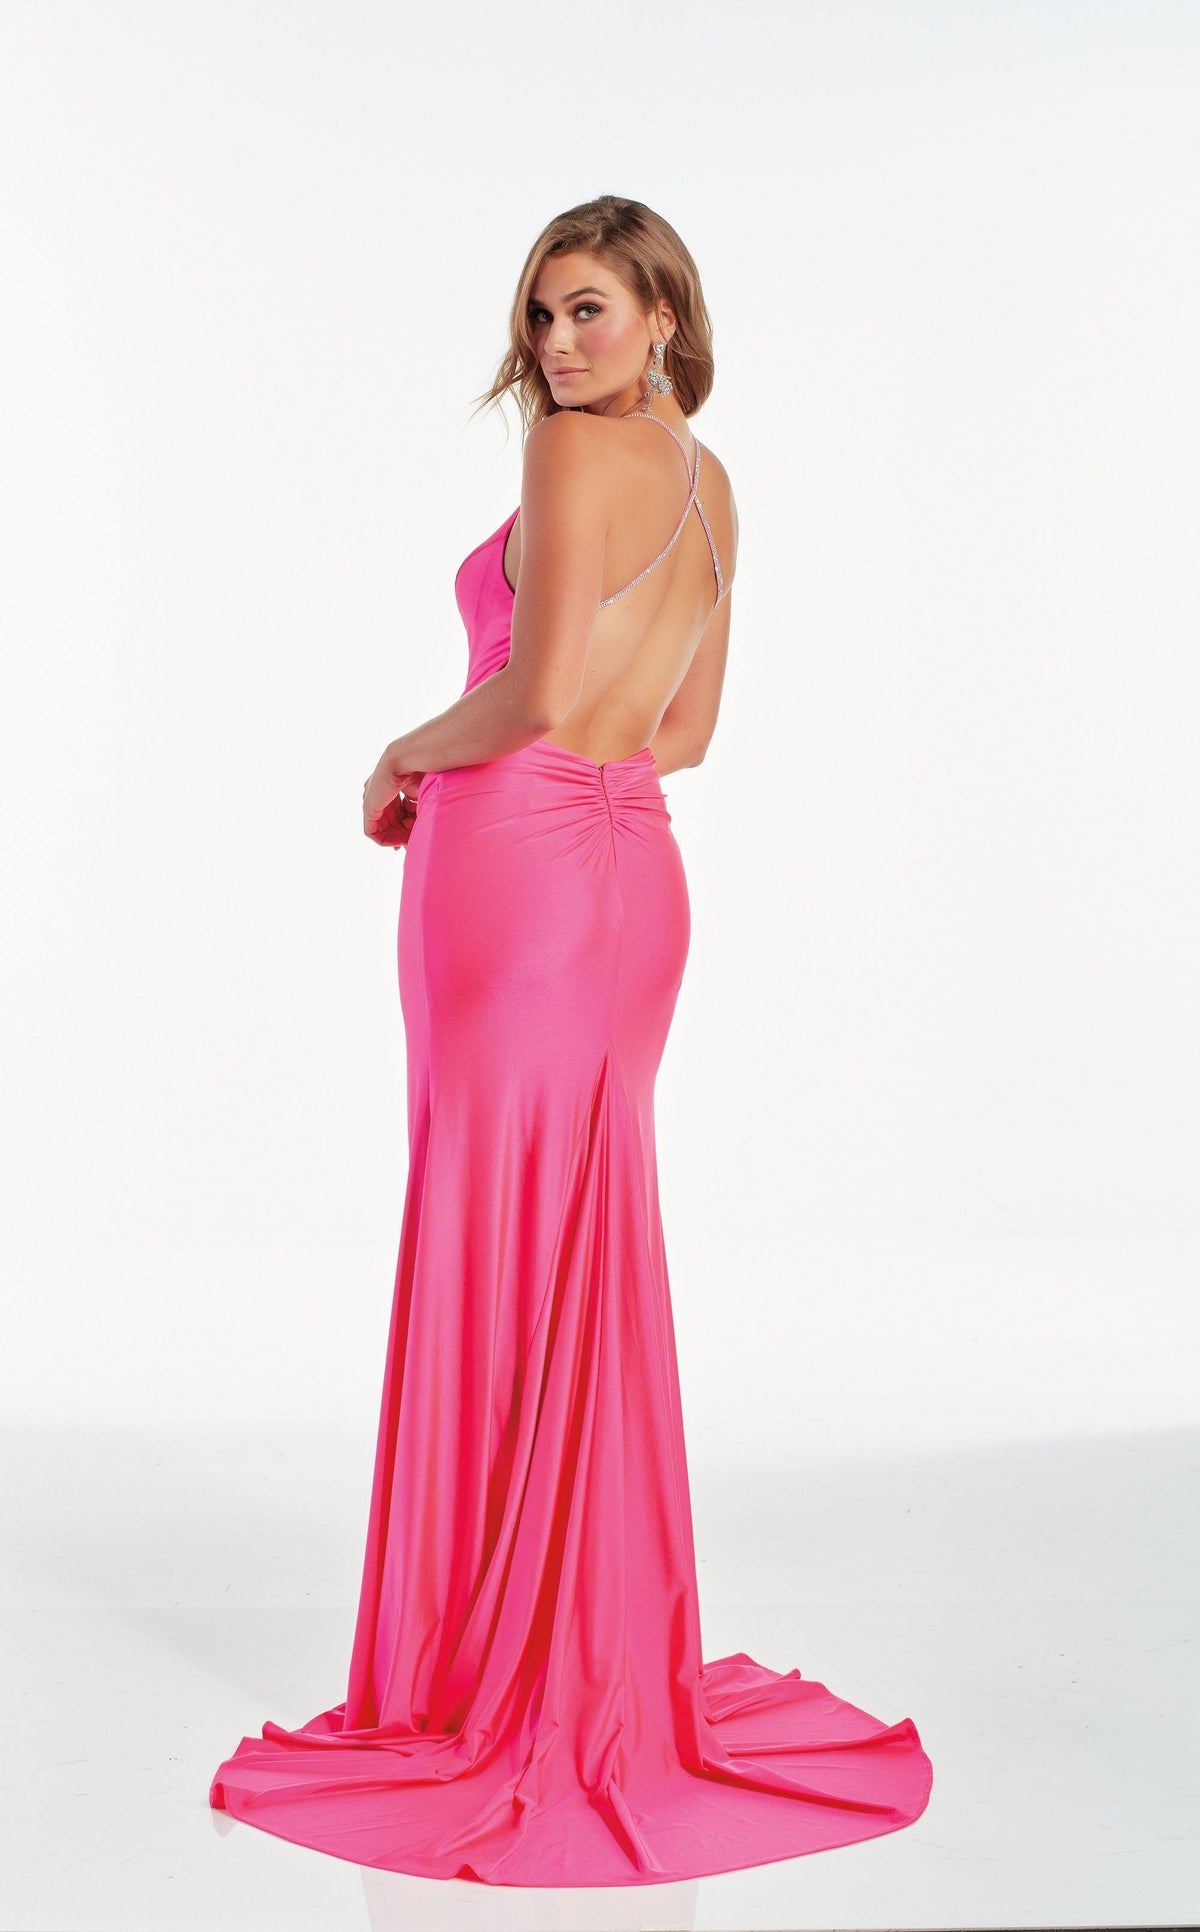 Barbie Pink slinky prom dress with a strappy open back, stone embellished straps, and train